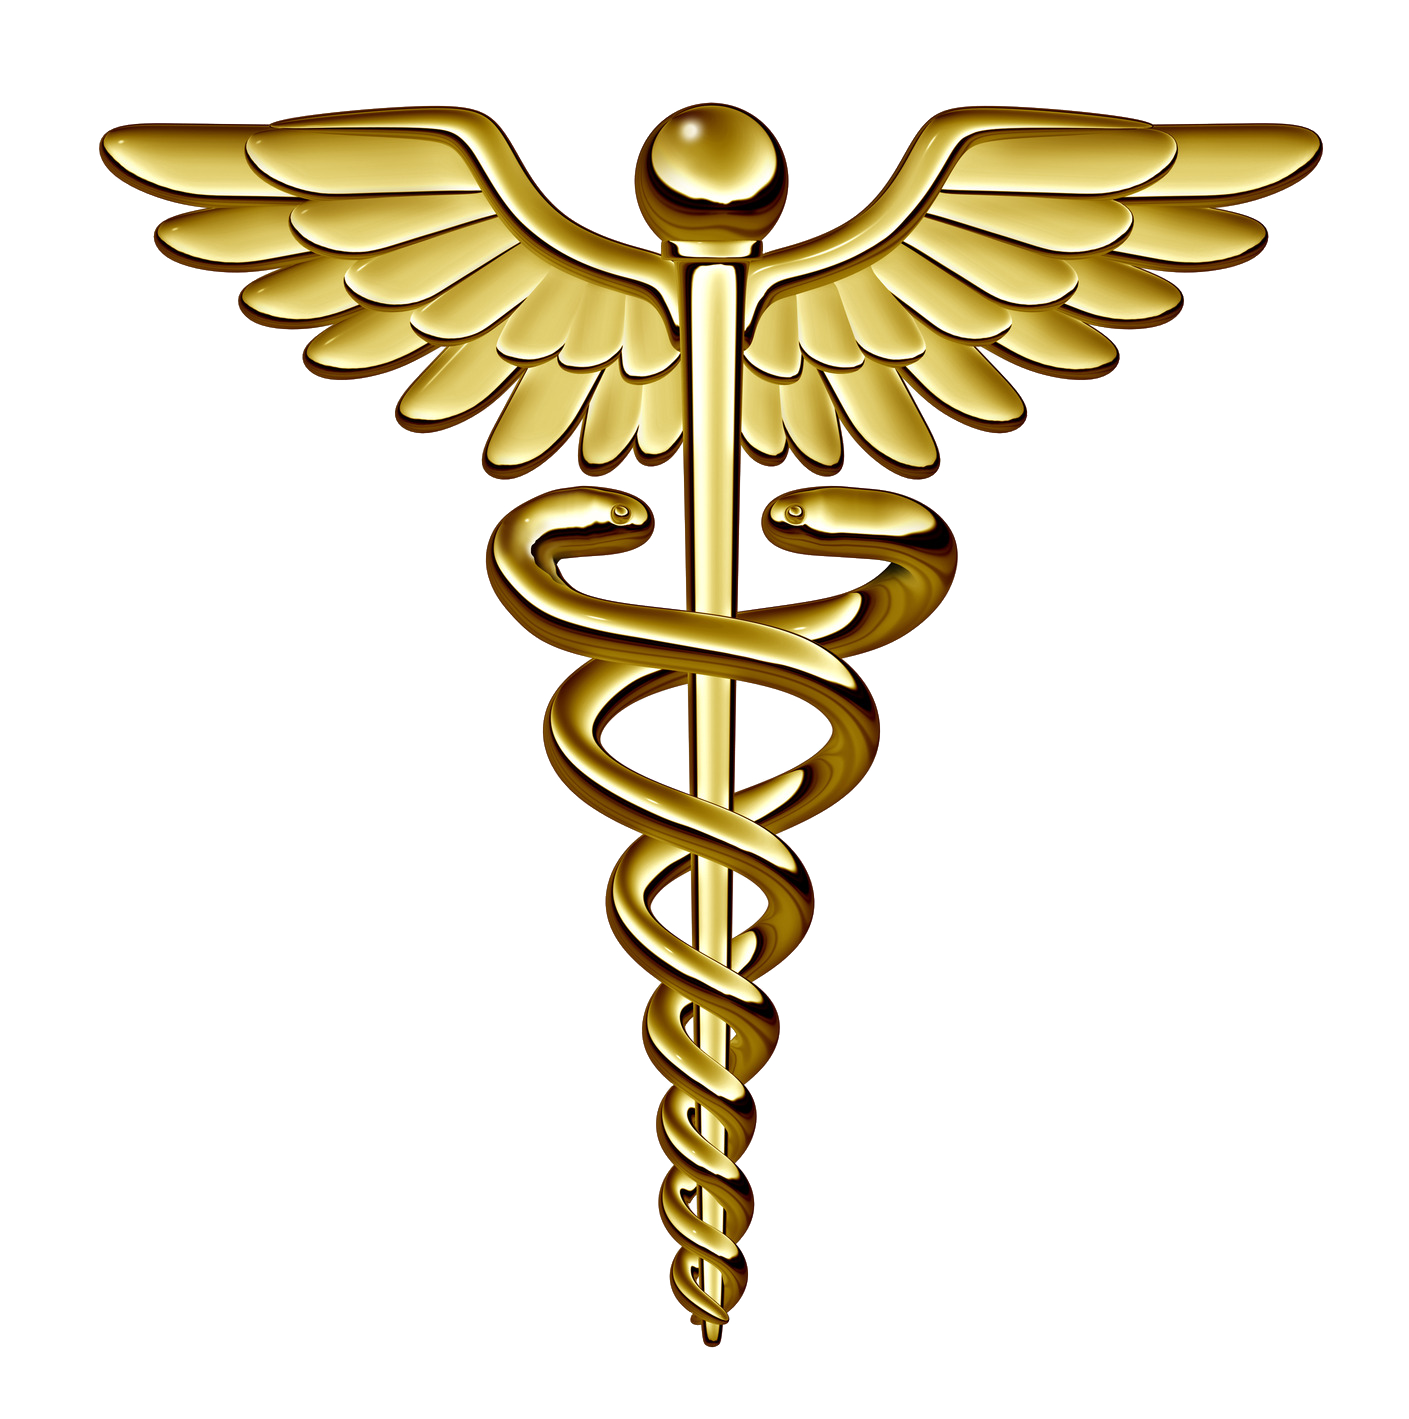 CaduceusWebTransparent